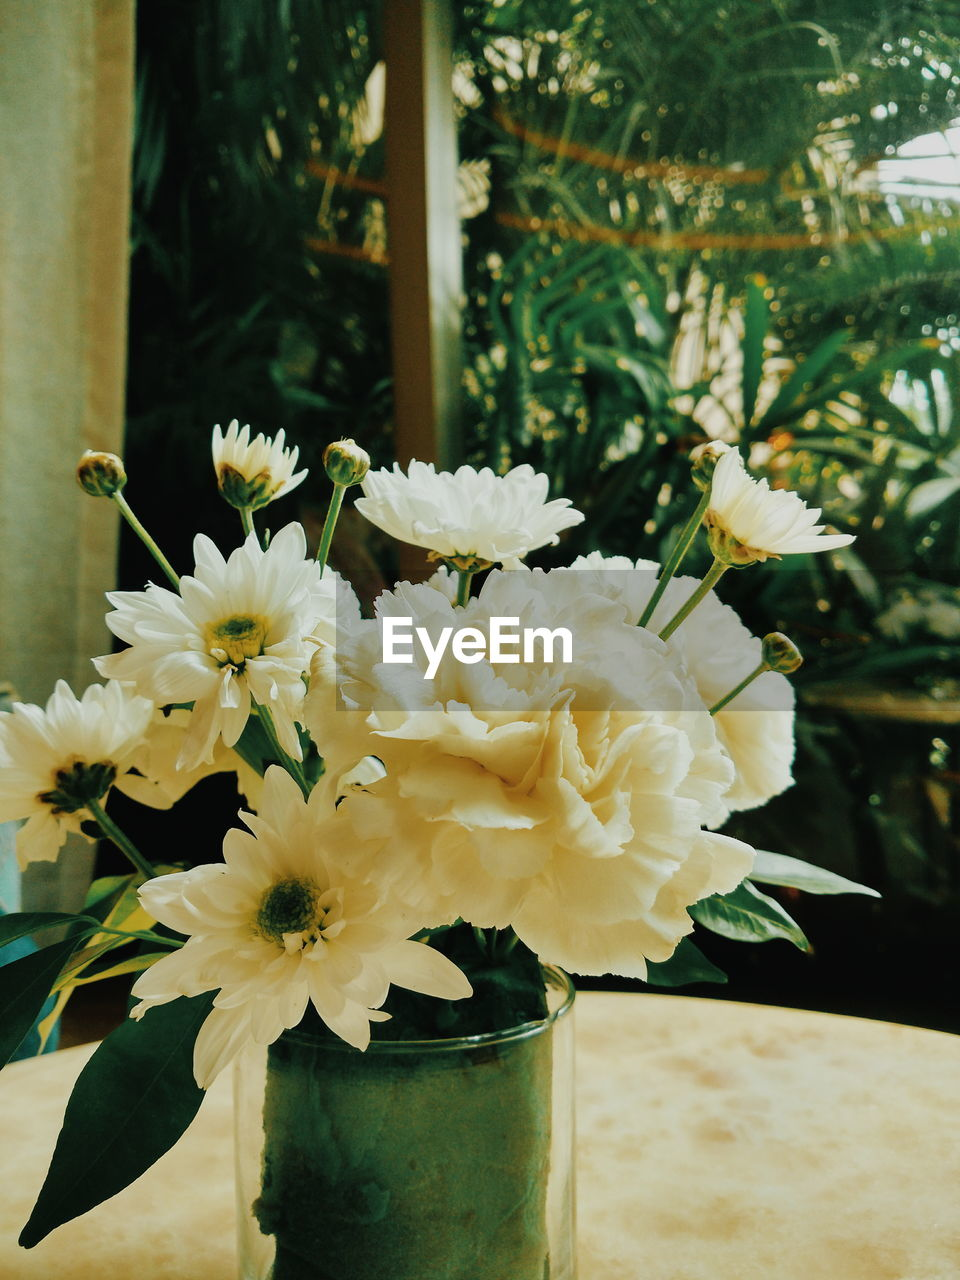 flower, flowering plant, plant, beauty in nature, vulnerability, freshness, fragility, nature, close-up, focus on foreground, petal, flower head, growth, vase, inflorescence, no people, white color, day, outdoors, yellow, flower arrangement, bunch of flowers